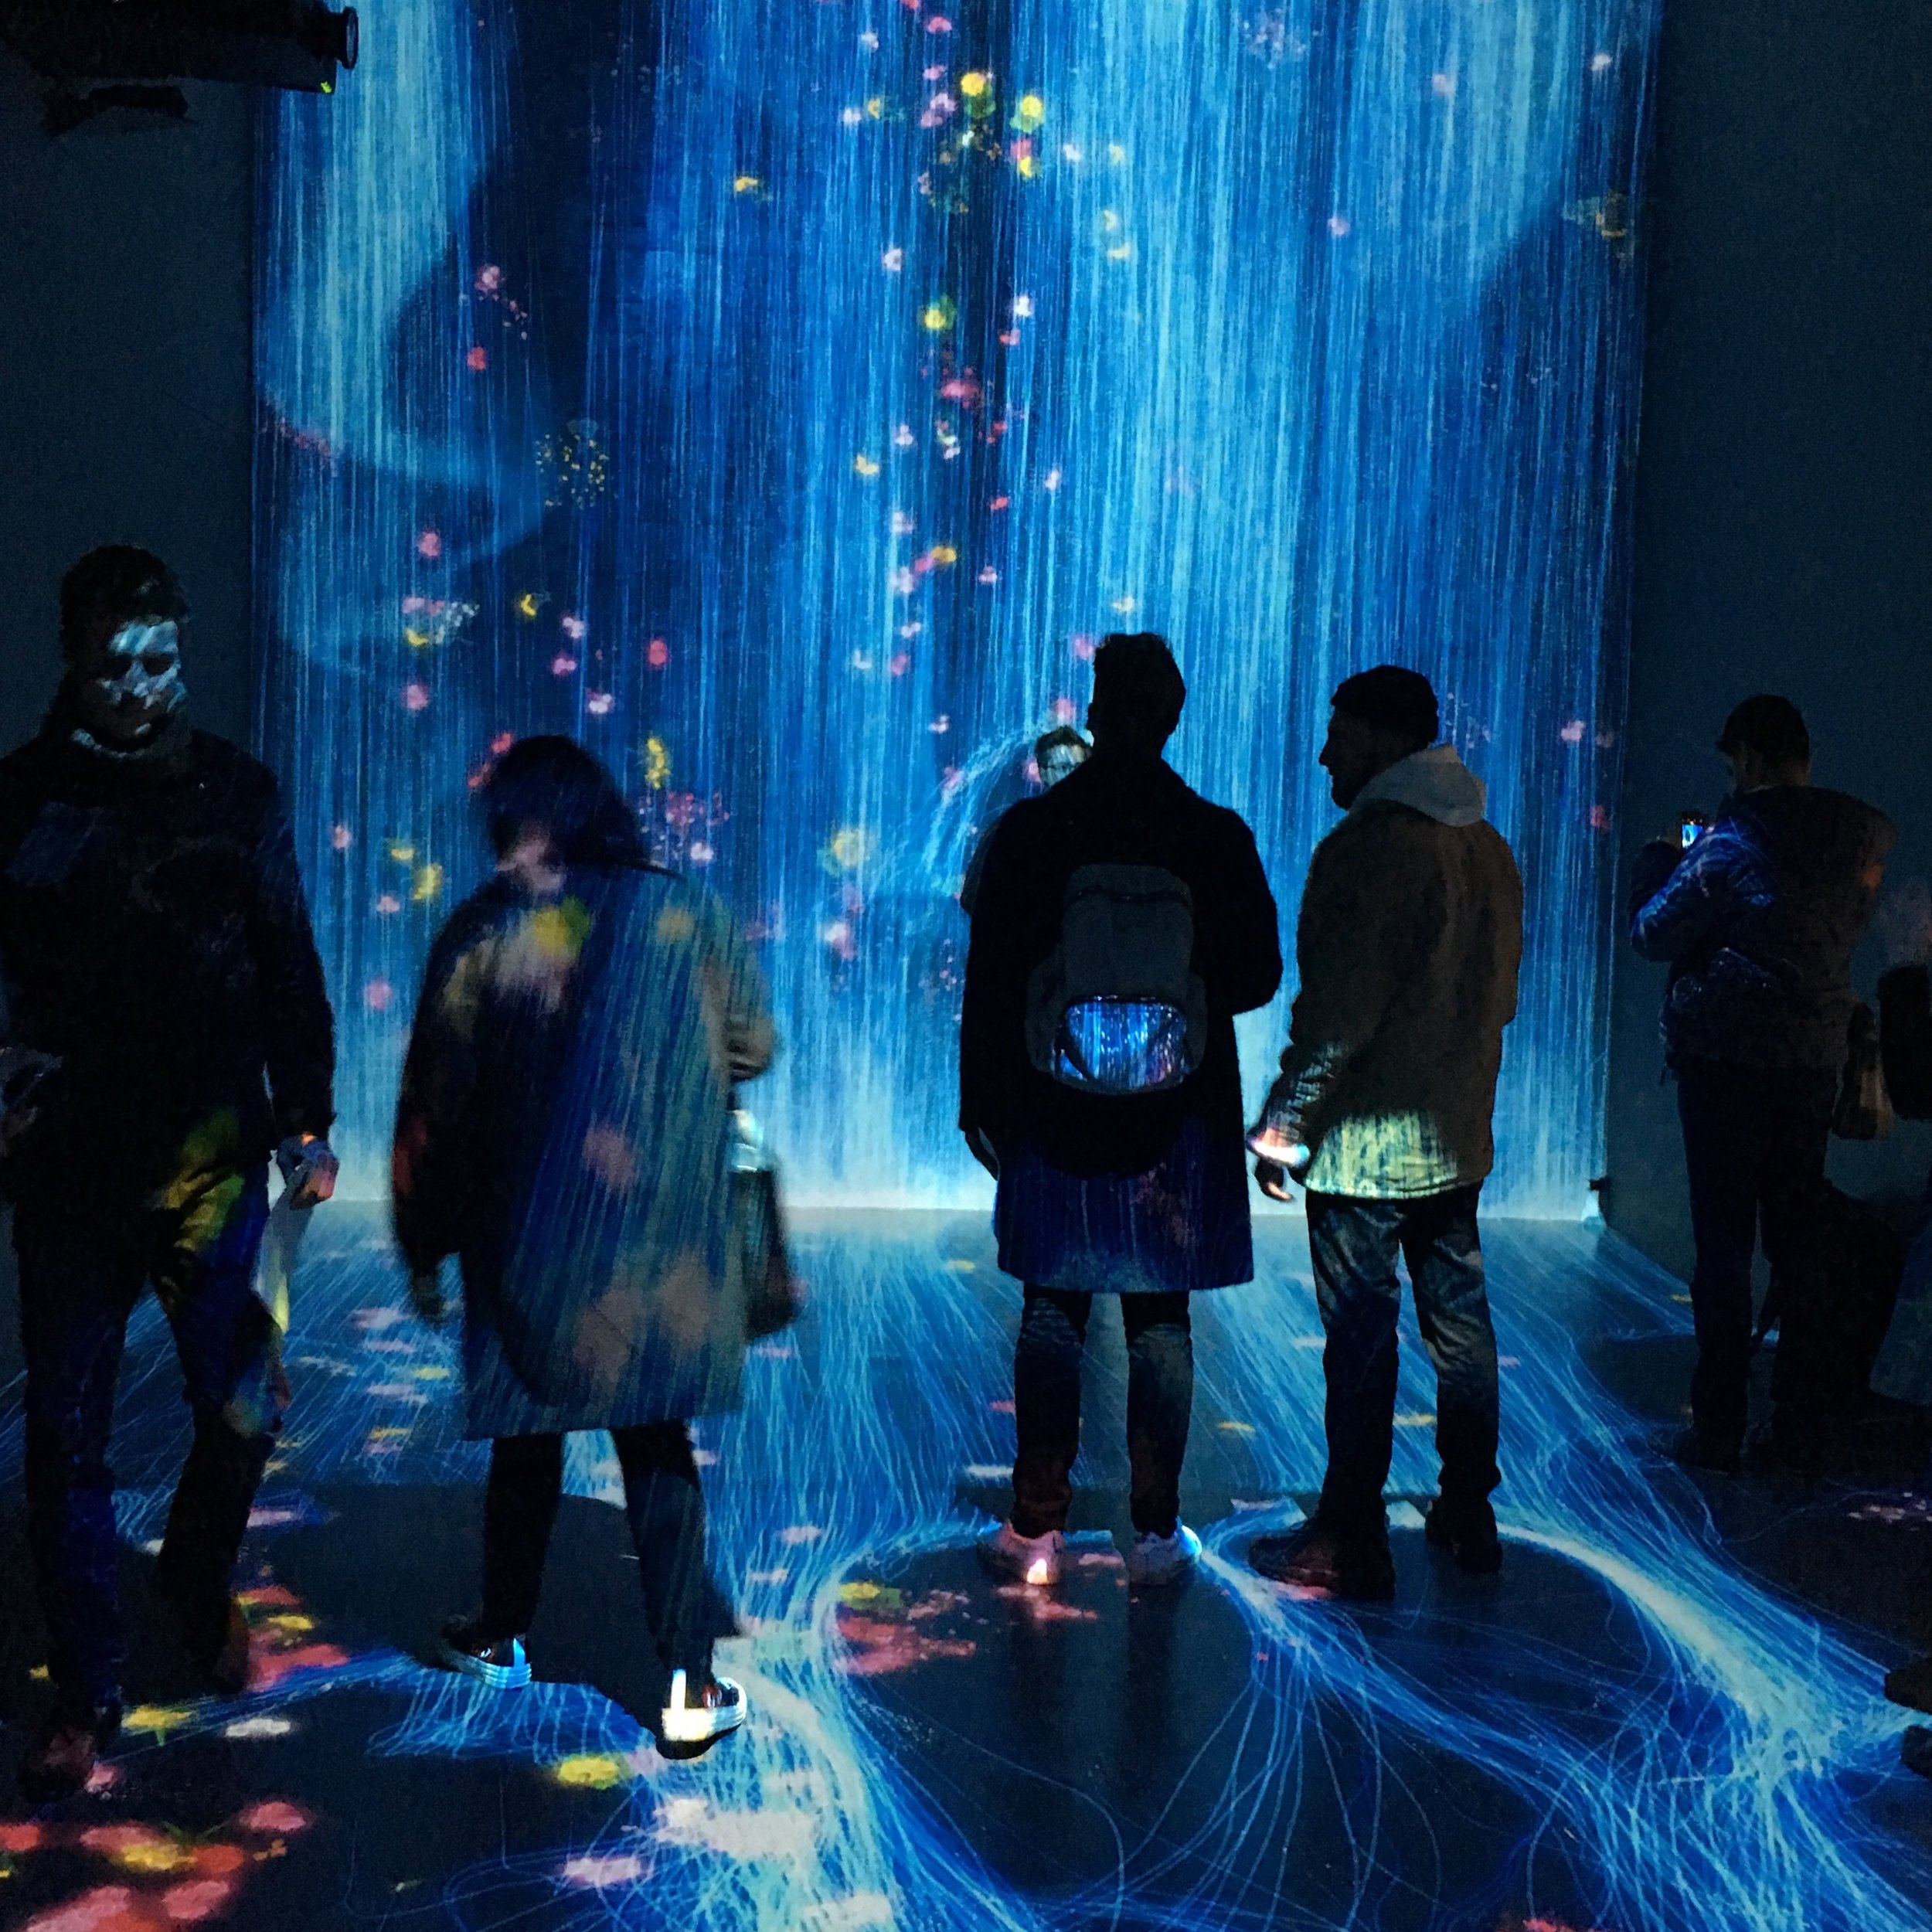 Transcending Boundaries, teamLab, Pace London Gallery